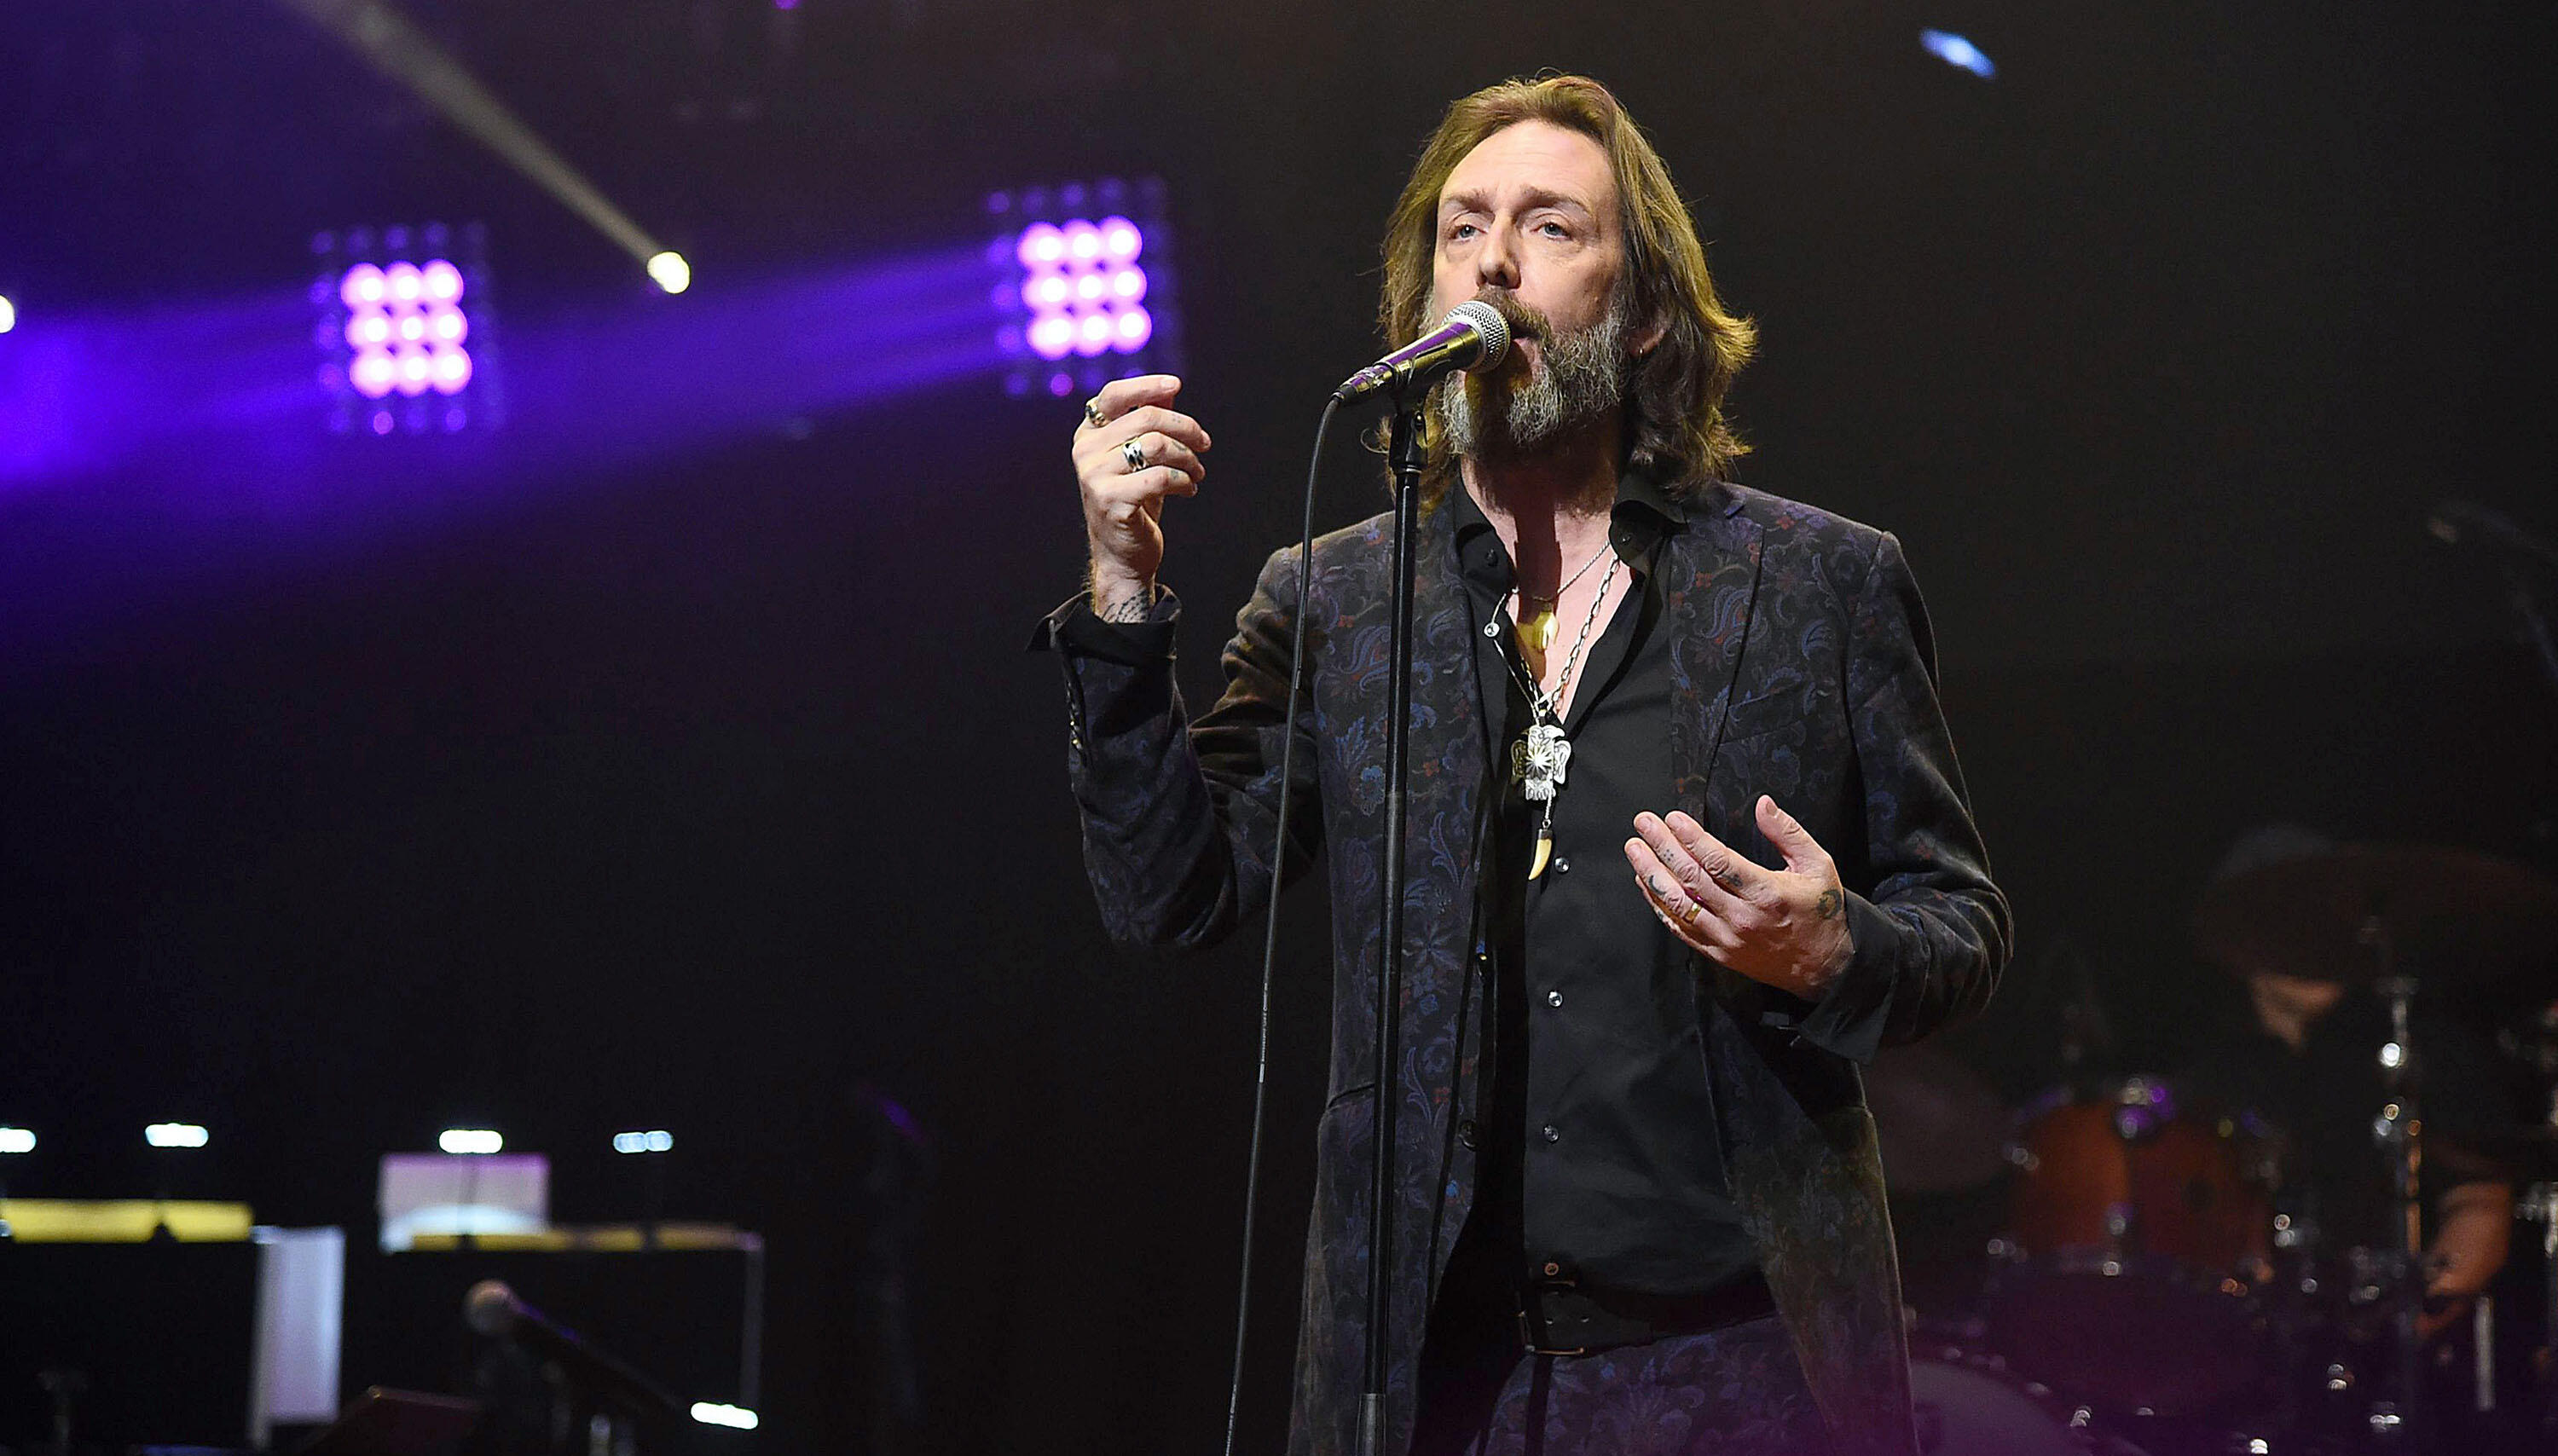 The Black Crowes Have New Songs But No Plans To Record Yet